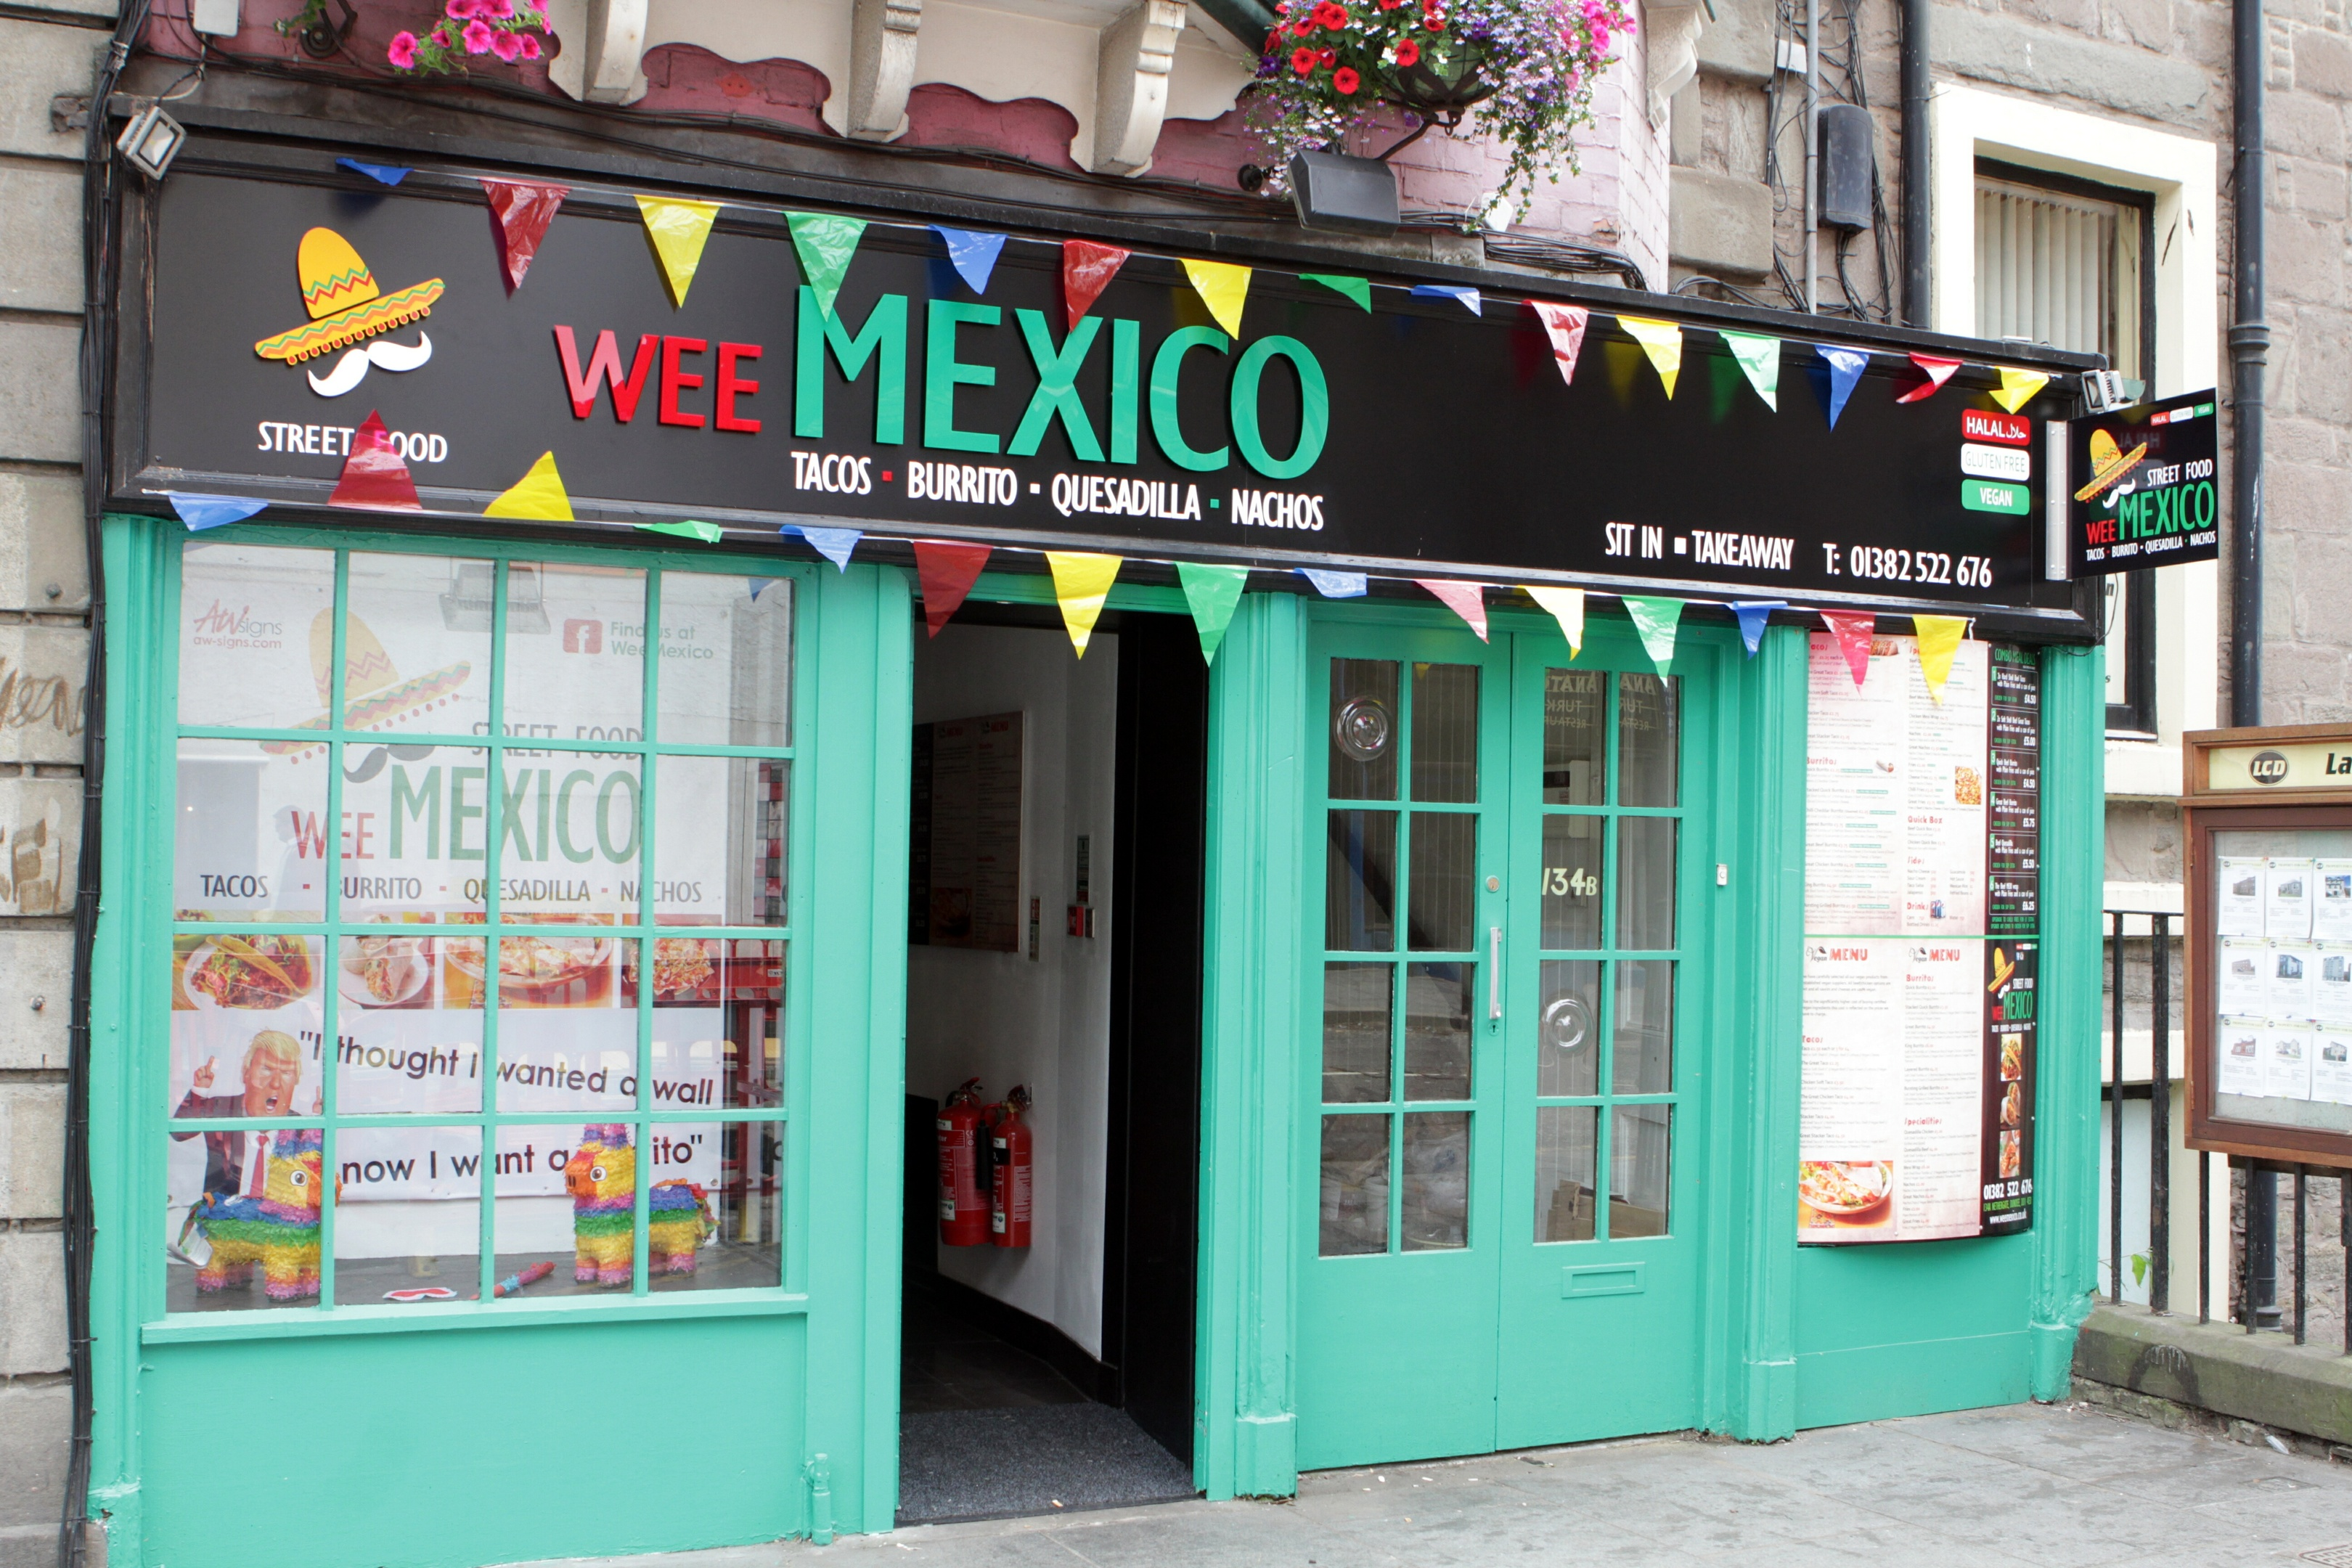 The Wee Mexico restaurant